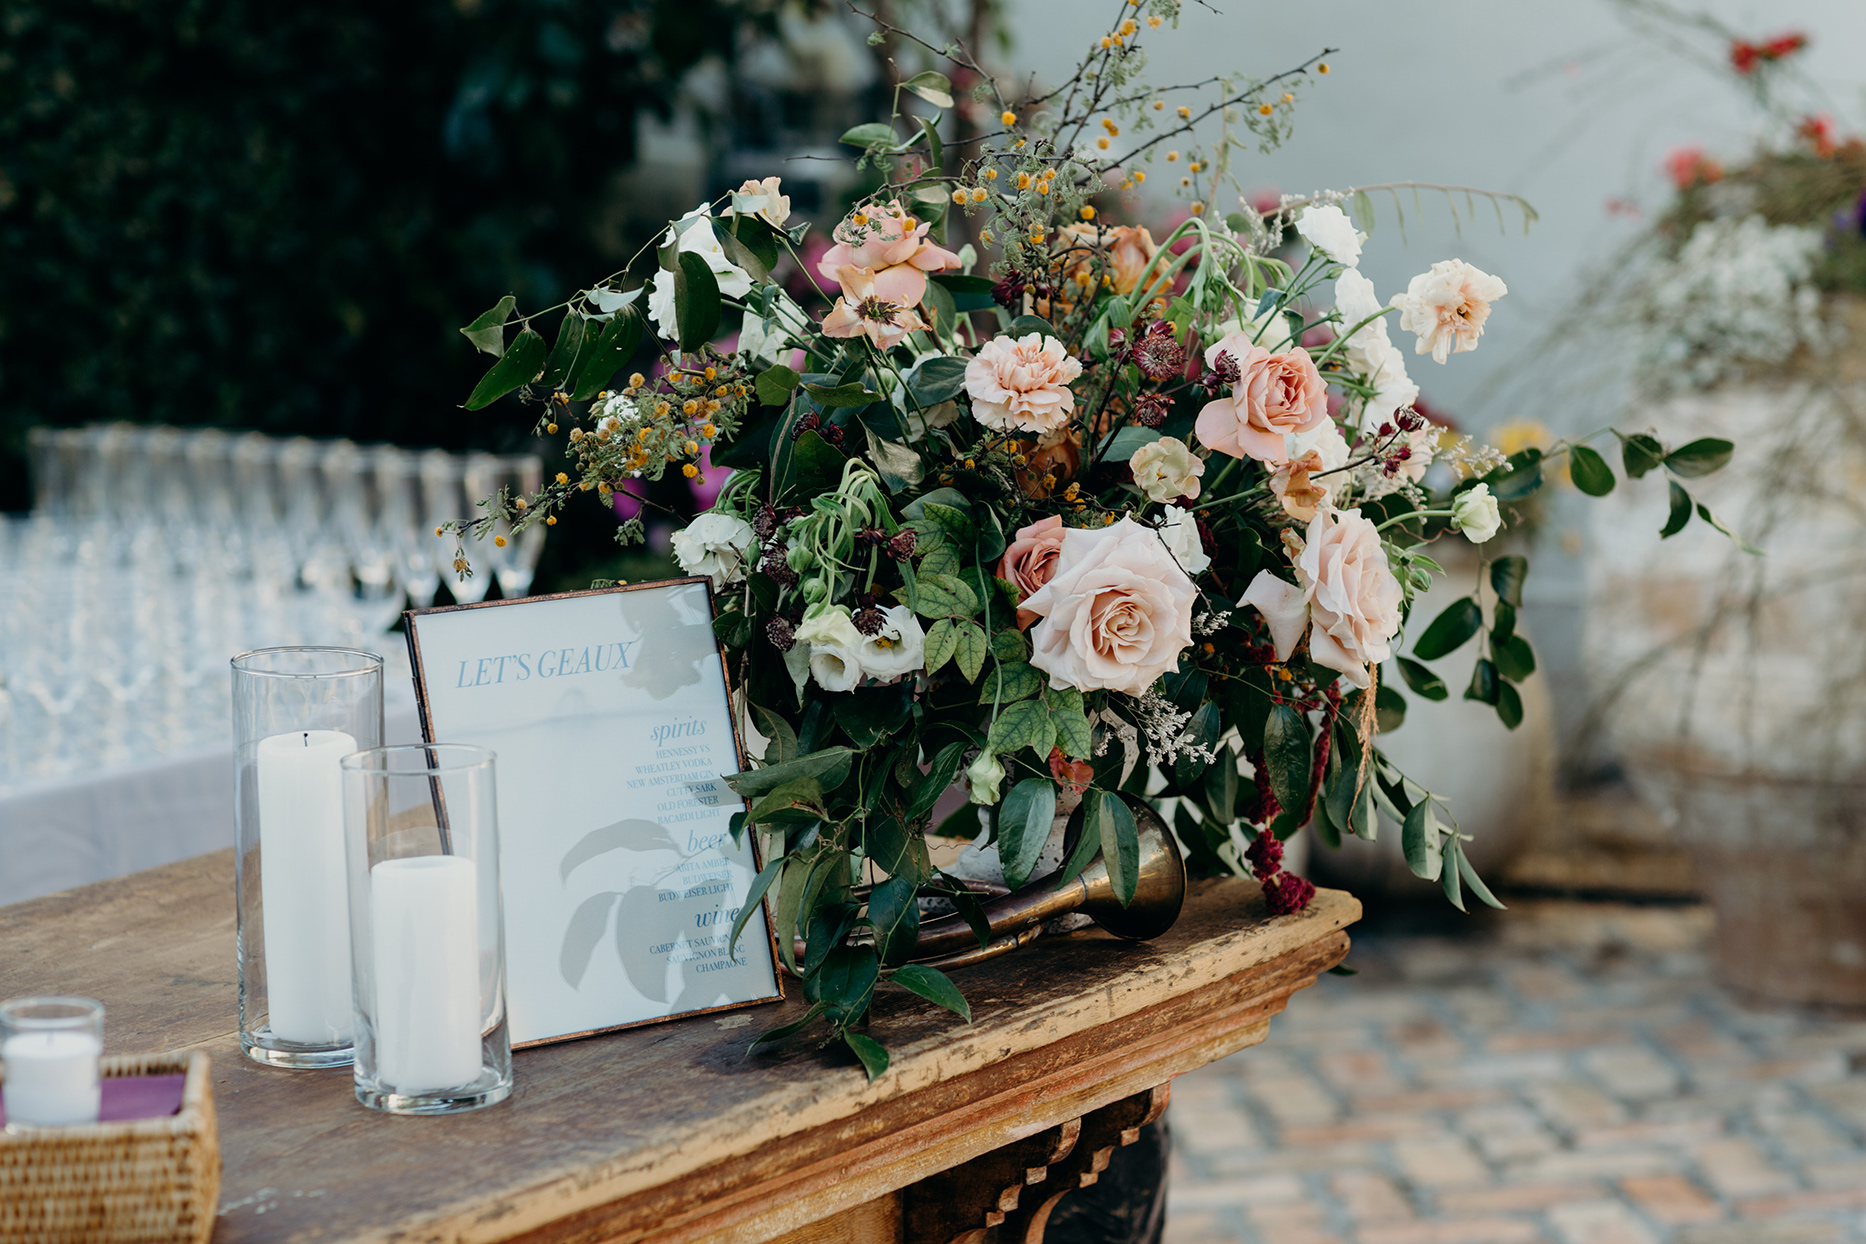 wedding ceremony rustic wooden bar with floral bouquet